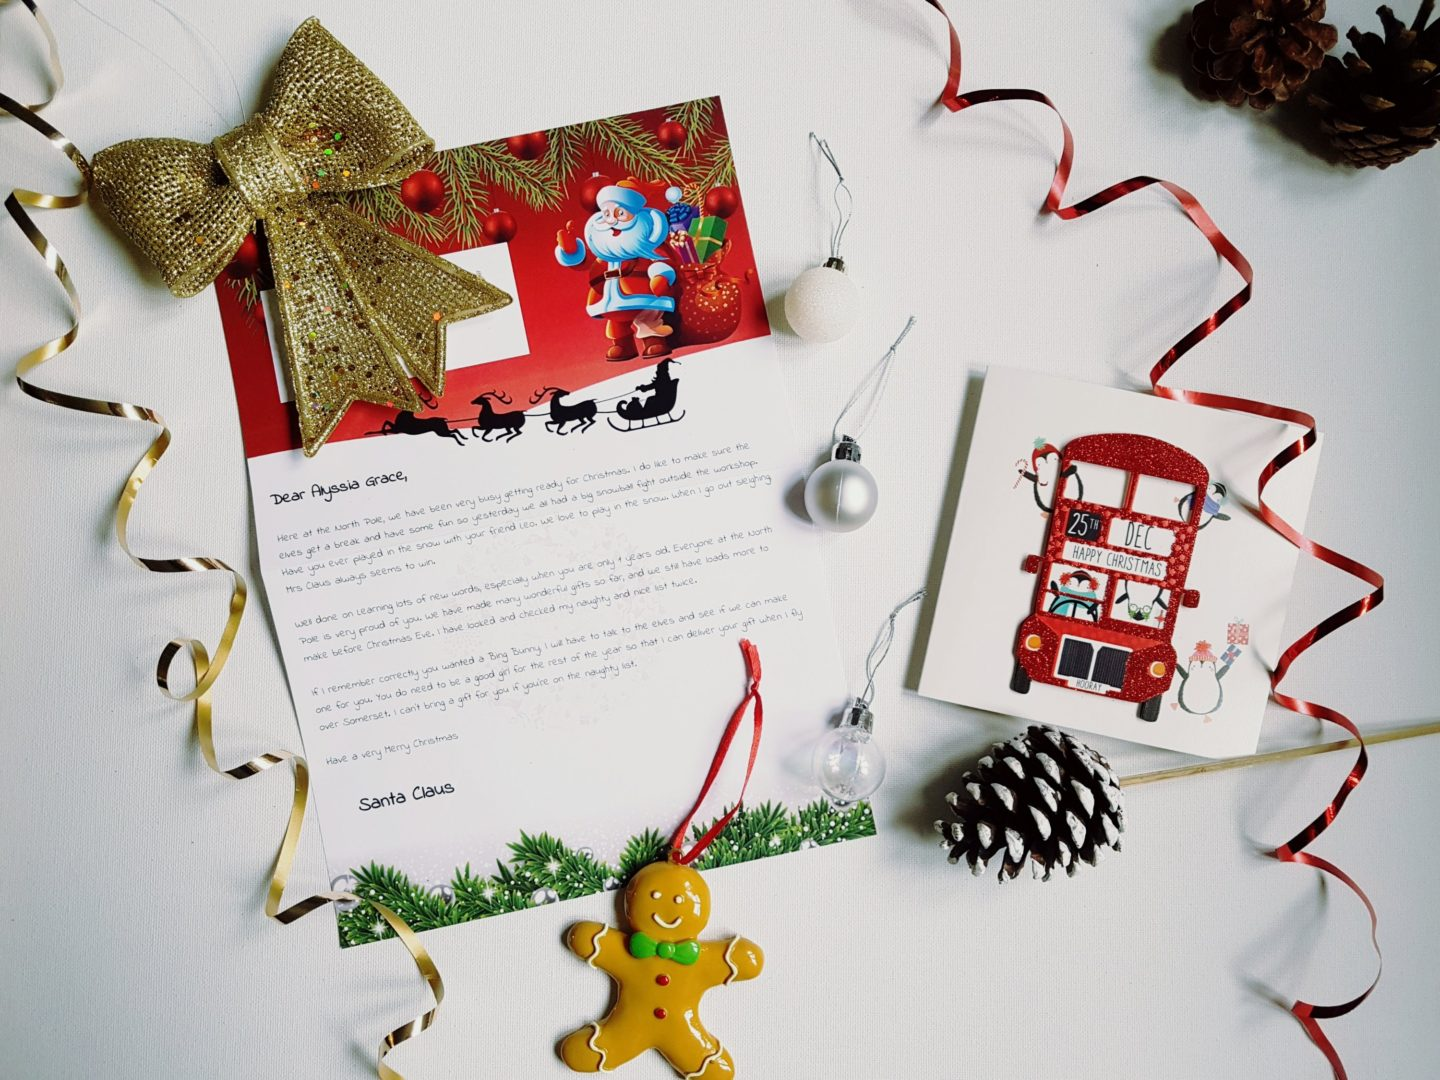 WIN A LETTER FROM SANTA.